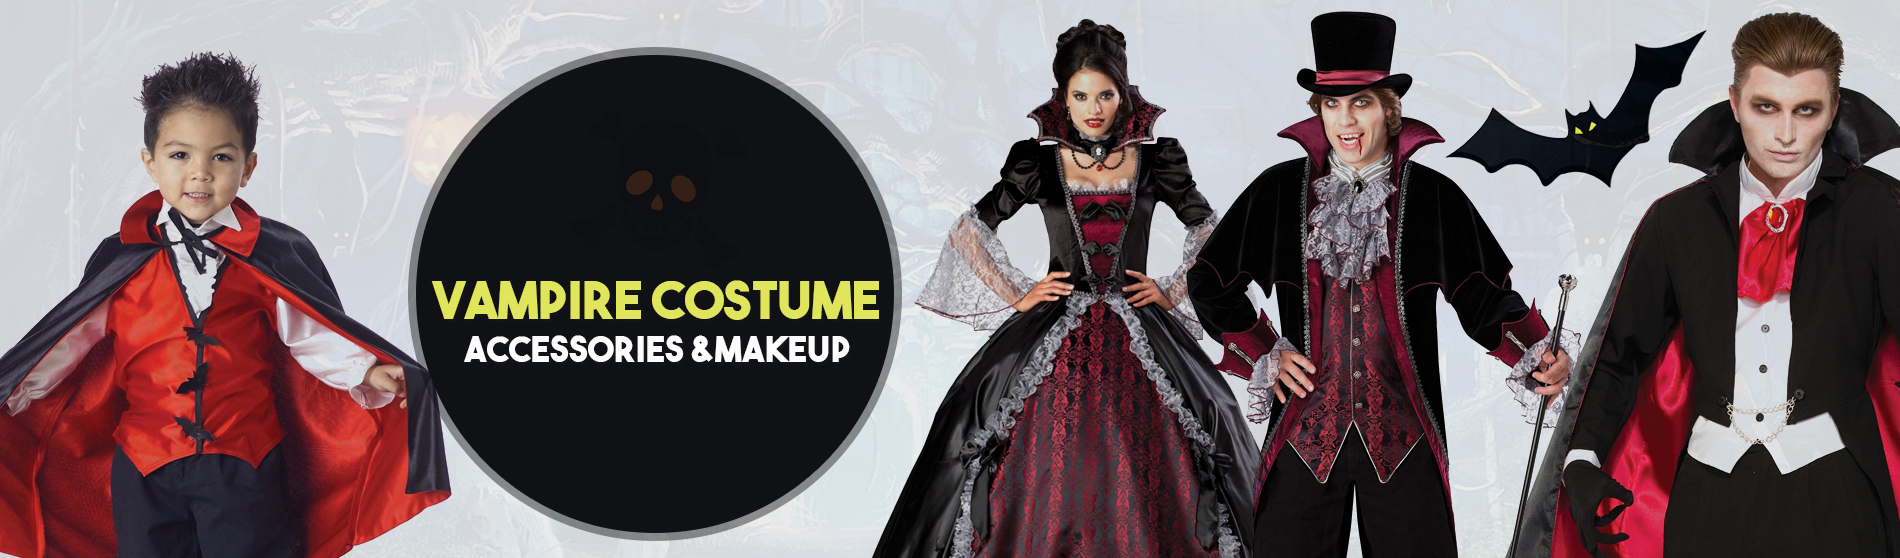 Vampire-Costume-Accessories-Makeup